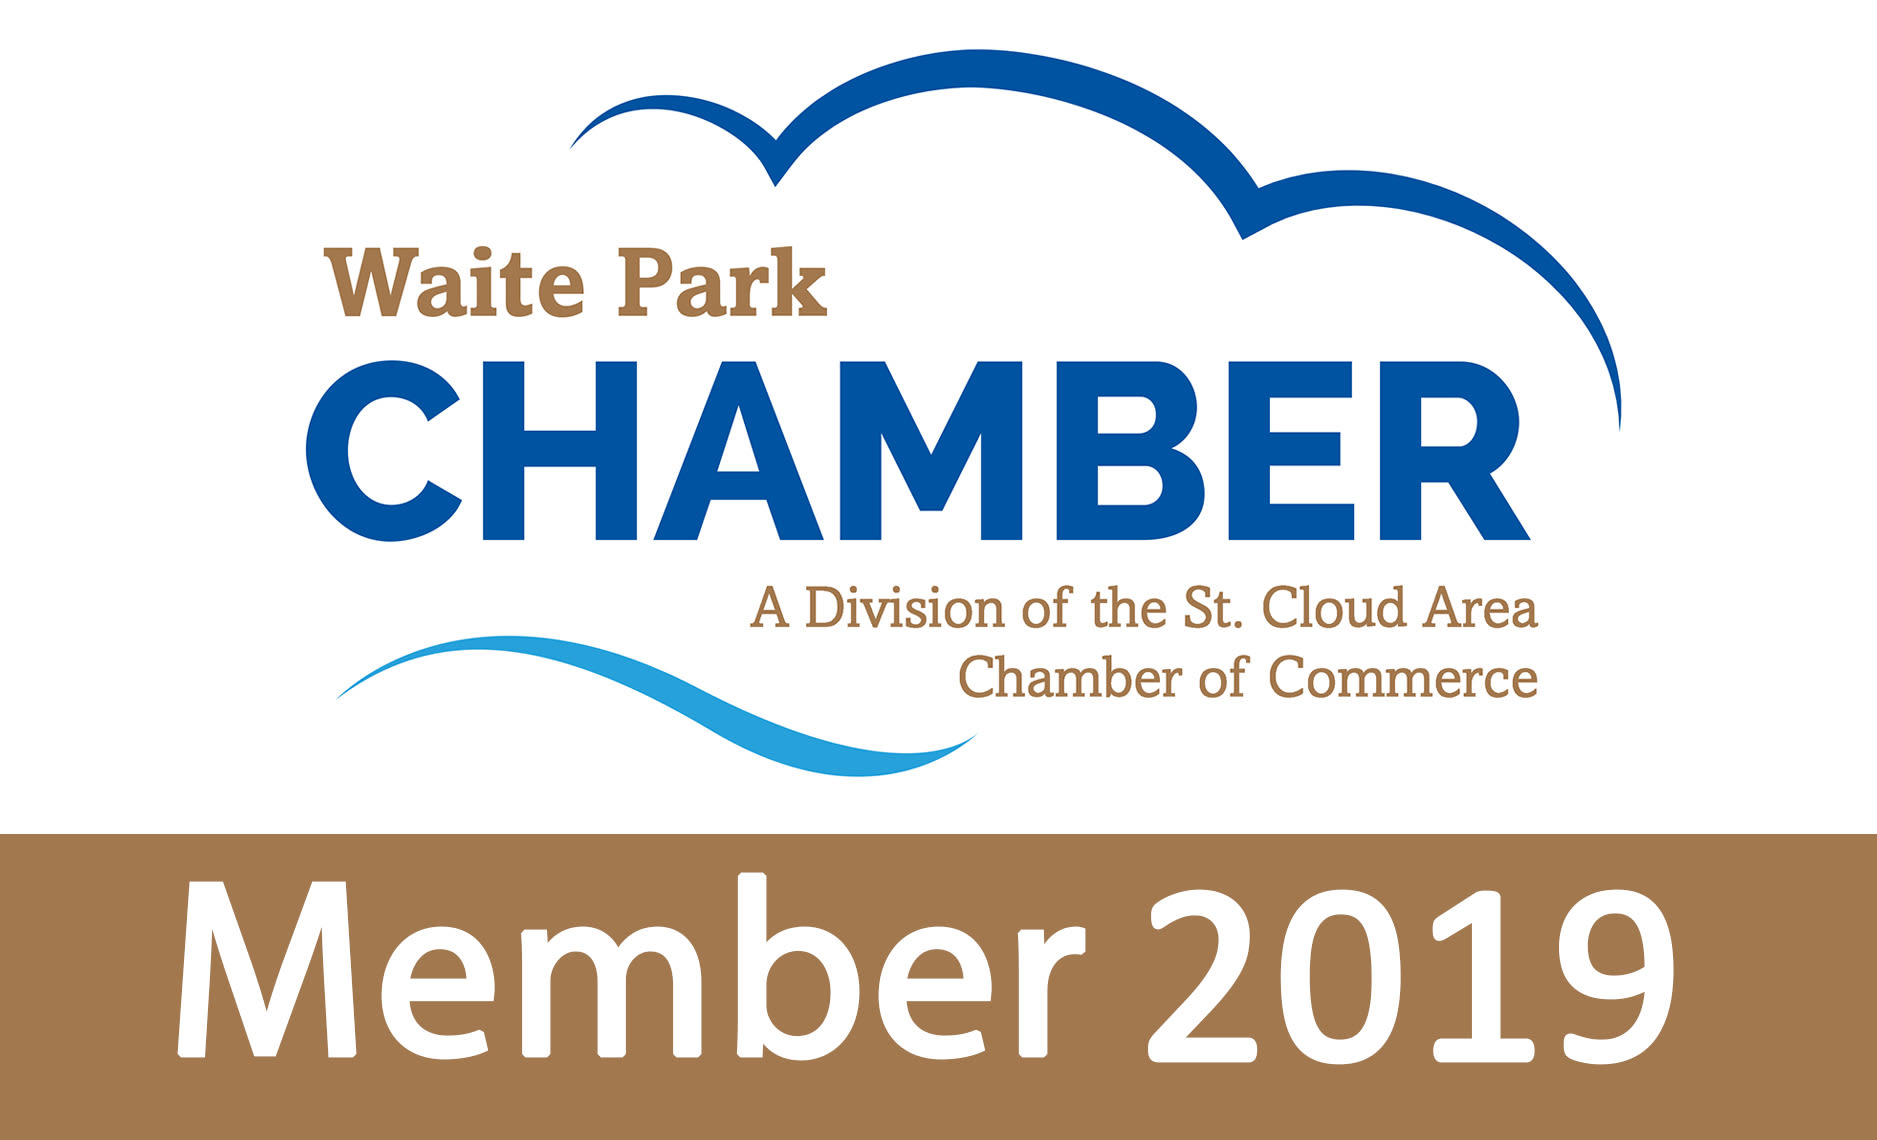 Waite Park Chamber of Commerce Logo